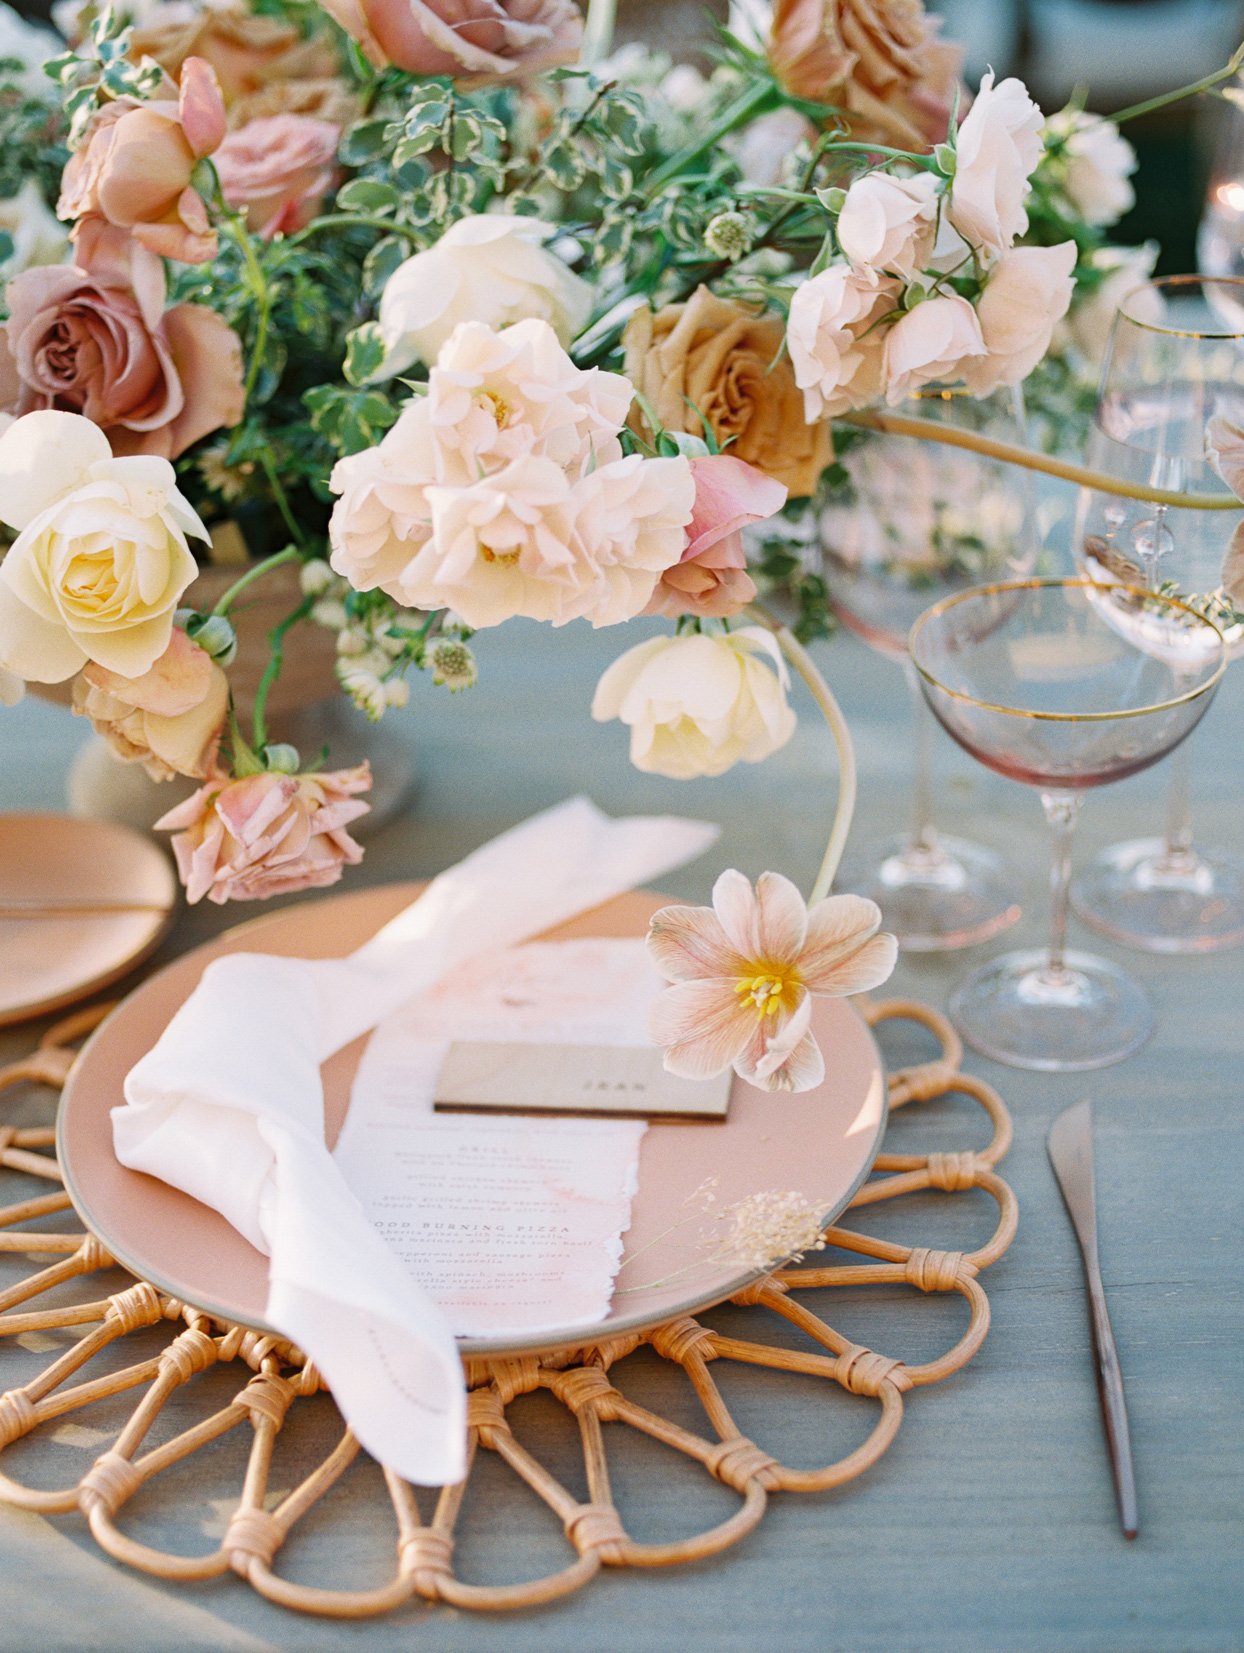 Place settings with blush colored plates and gold-rimmed glassware, and copper flatware